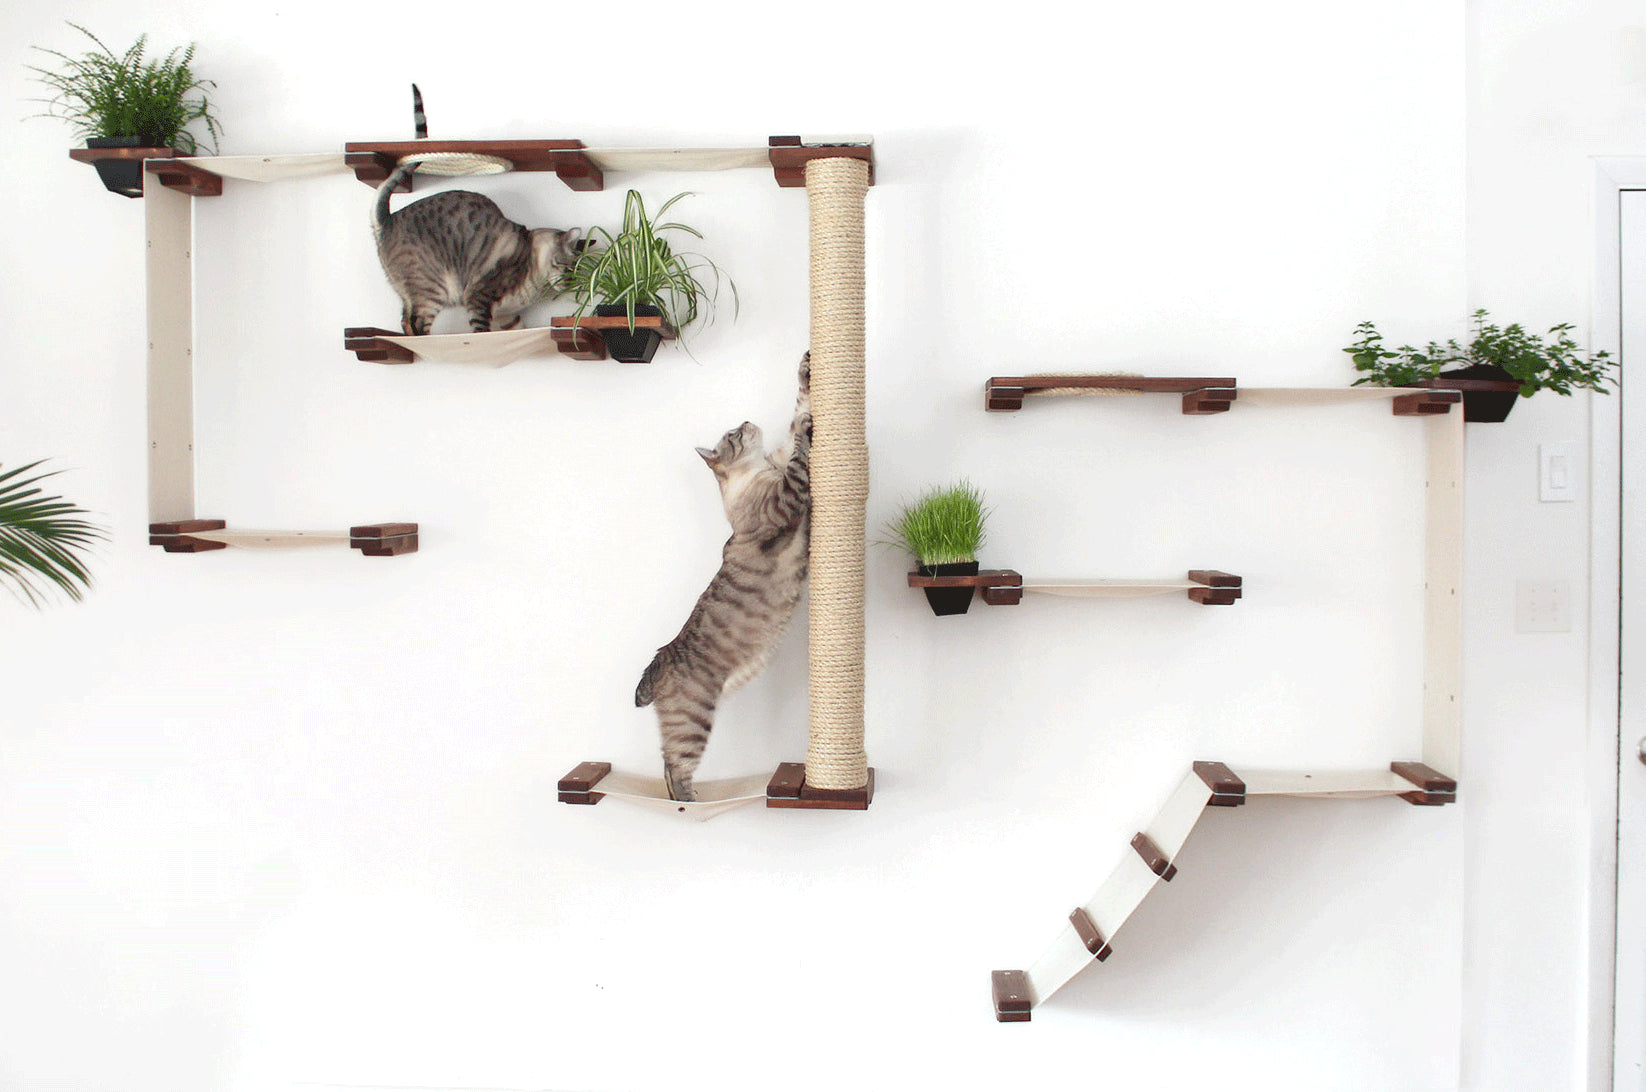 Catastrophicreations Cat Wall | Smack Bang Blog